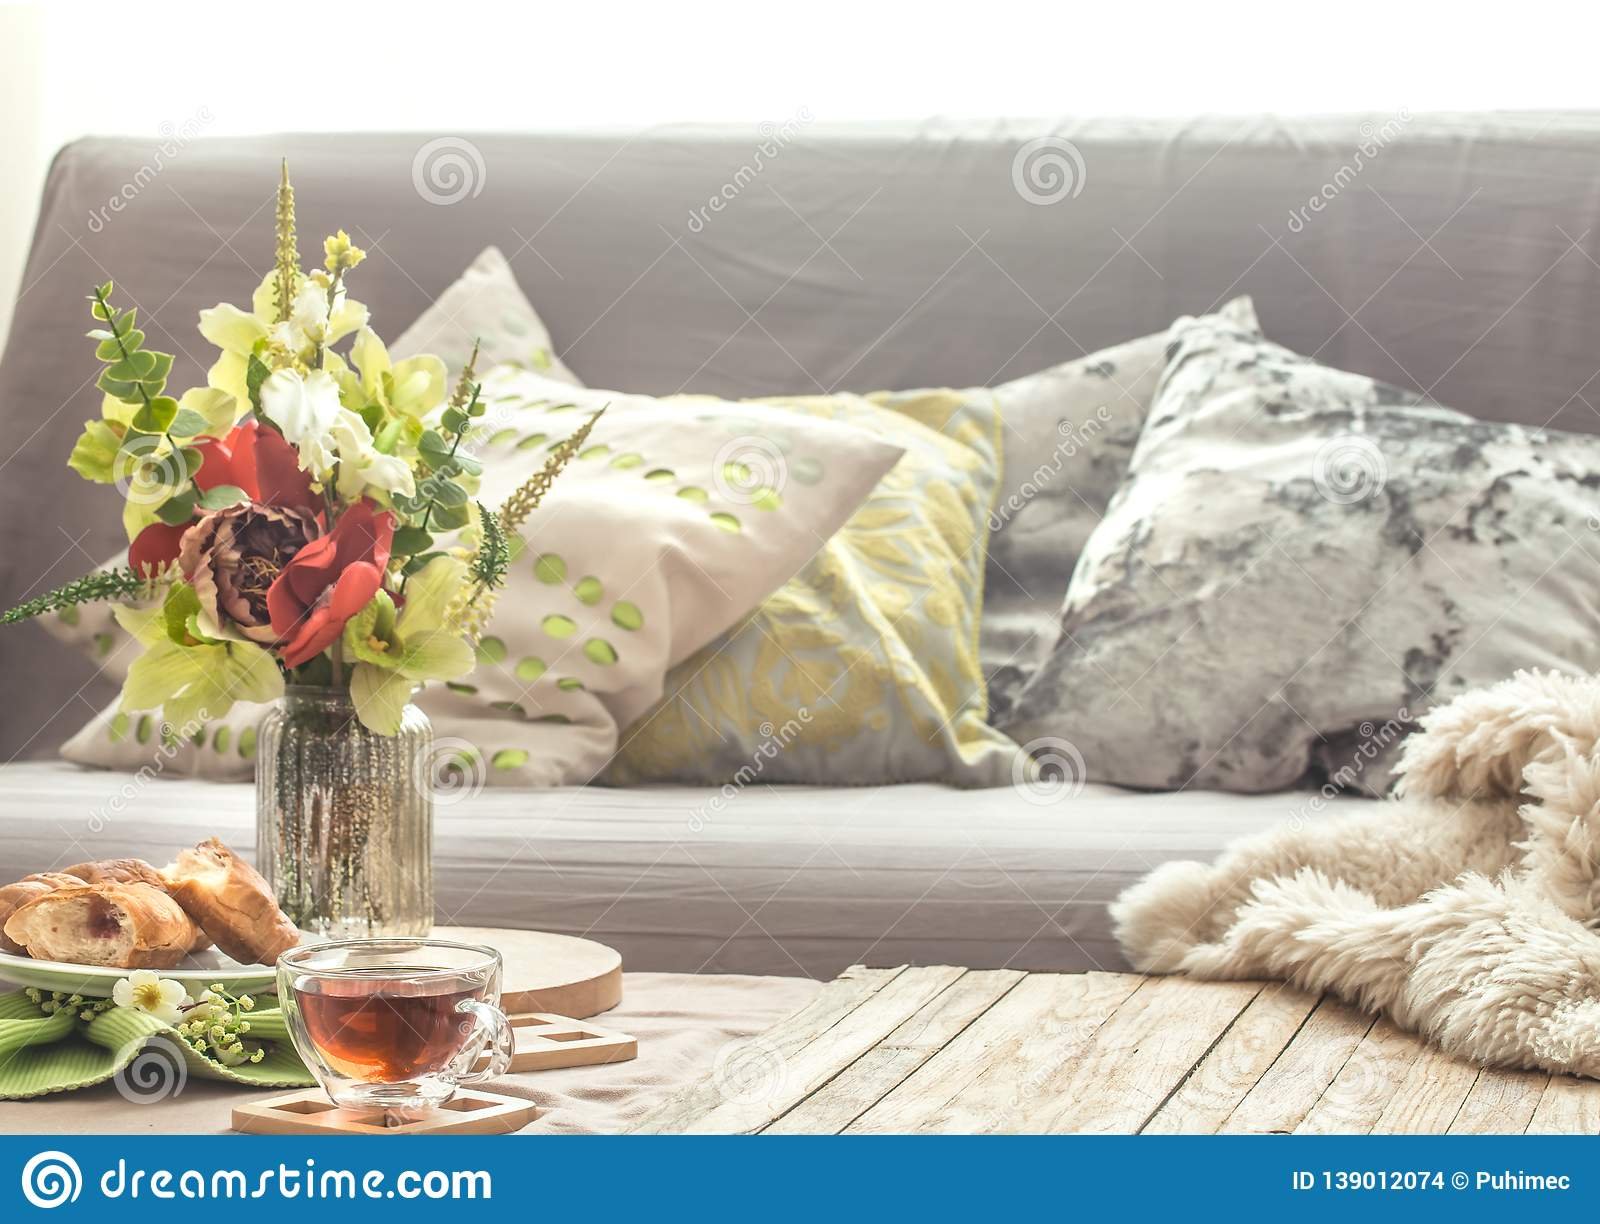 Homely Cozy Spring Interior In The Living Room Stock Photo ...